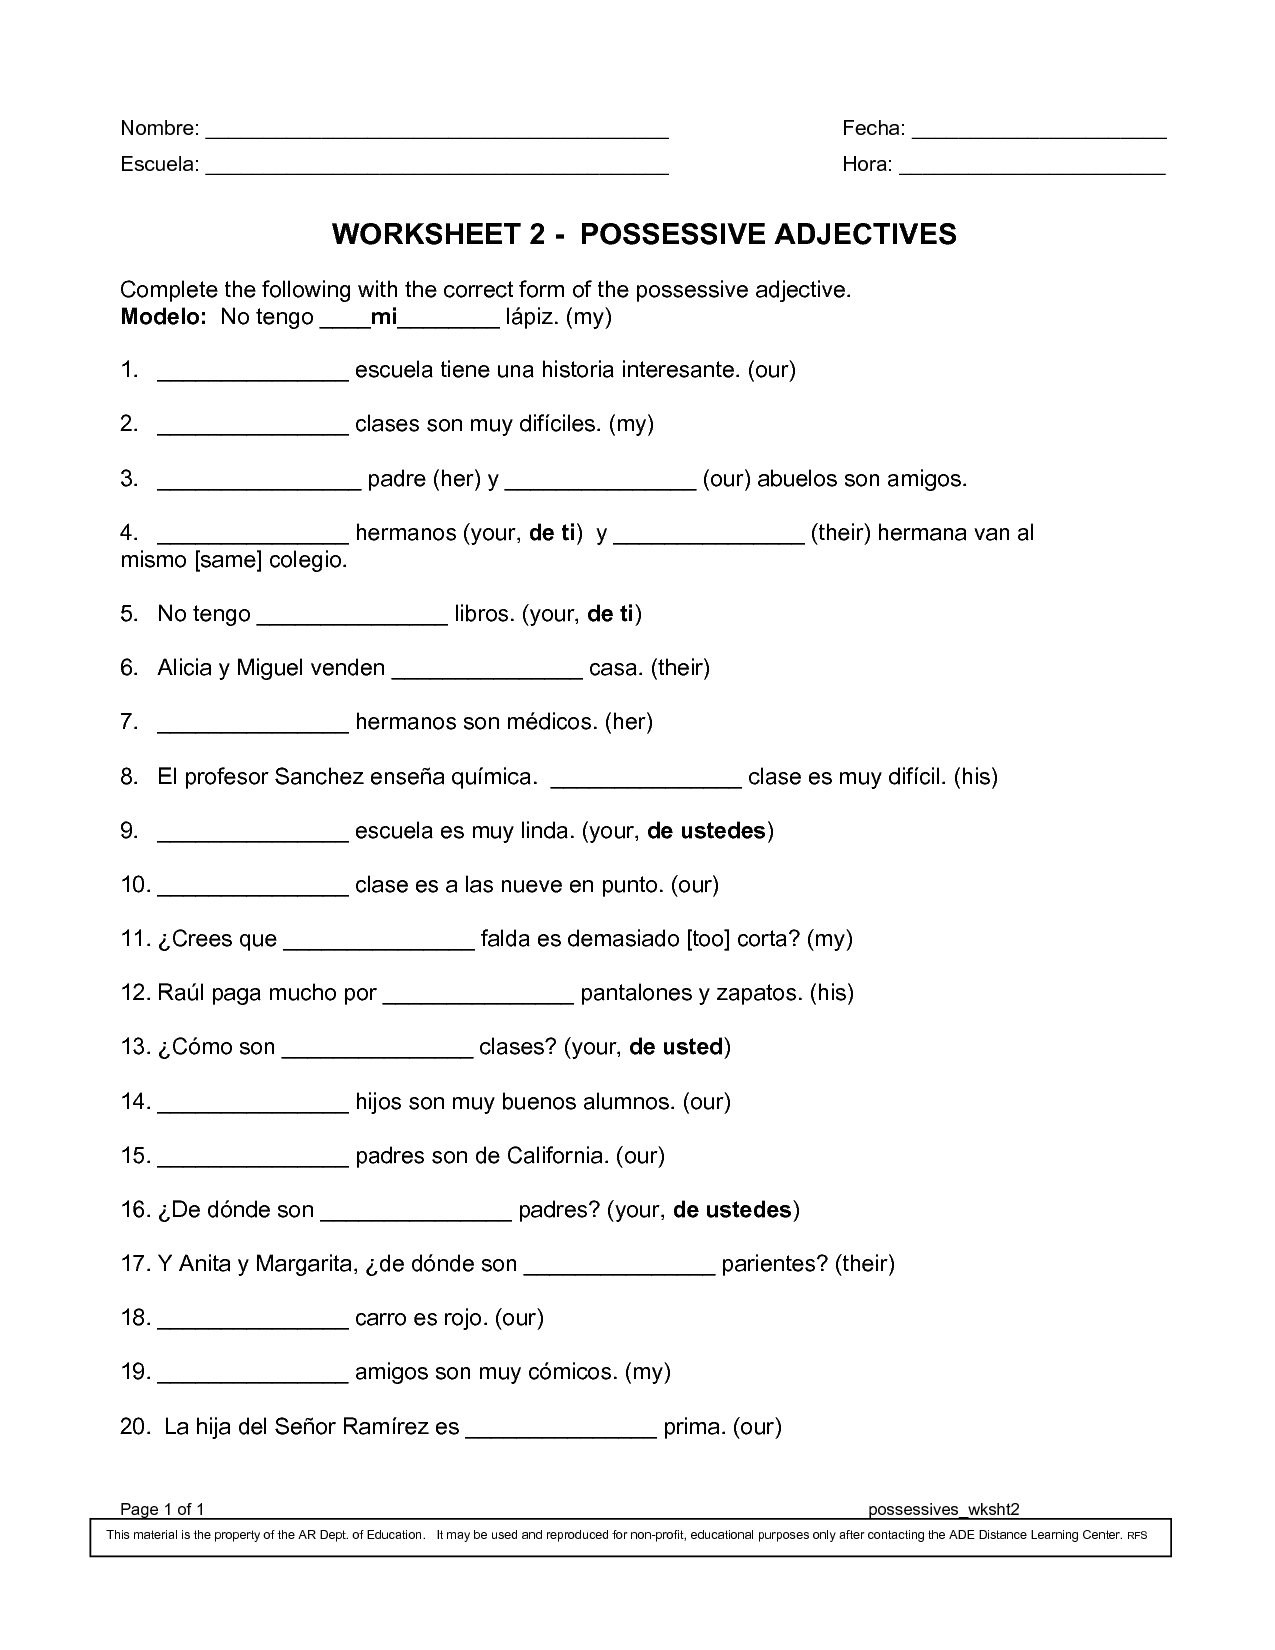 Possessive Adjective Worksheet